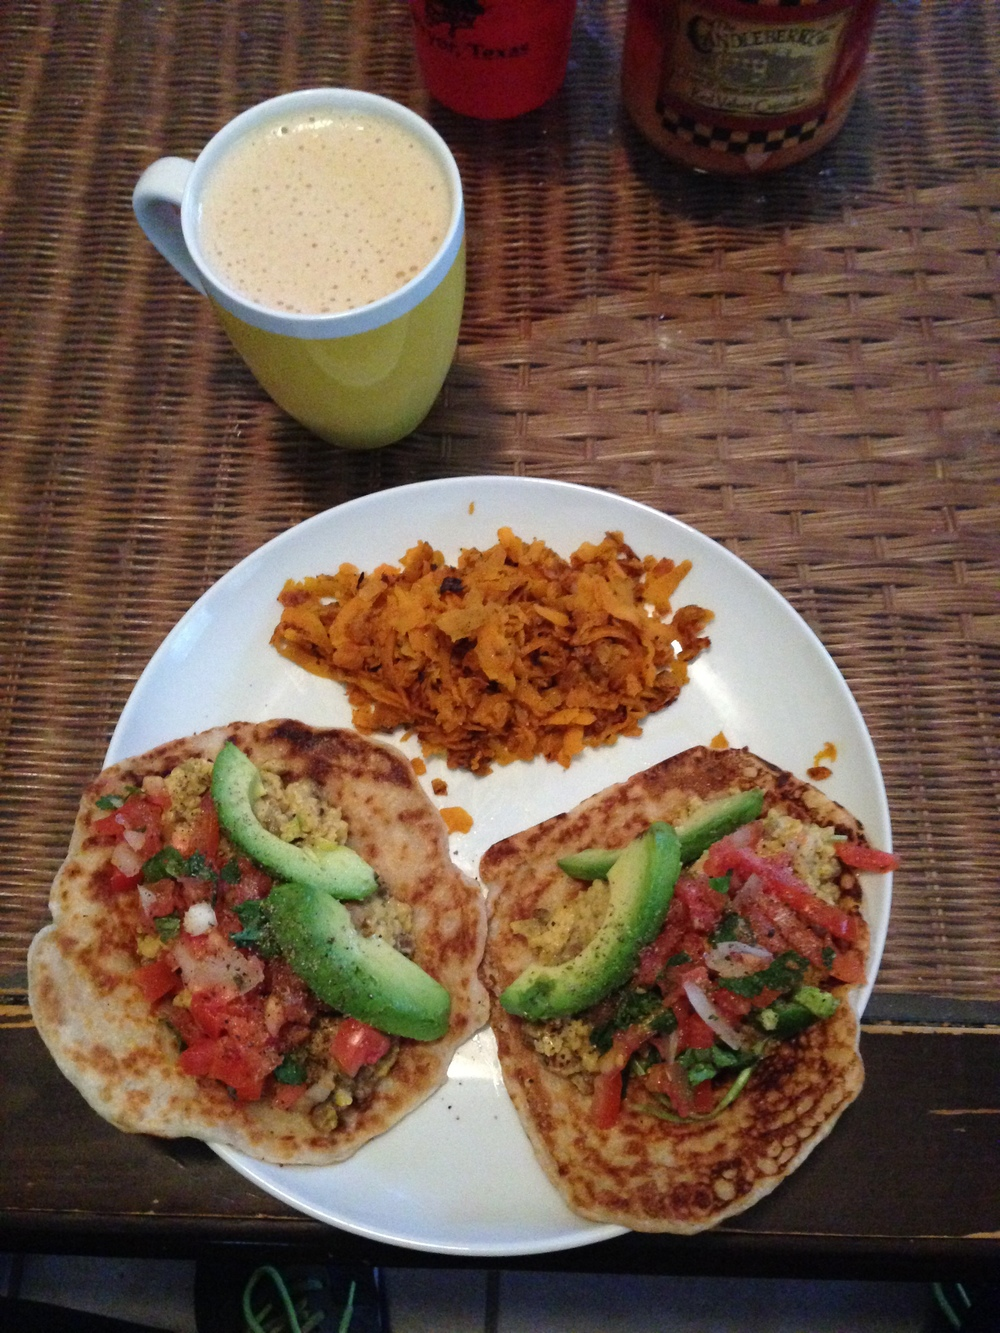 Who says Paleo isn't delicious? Bulletproof coffee with breakfast tacos and sweet potato hash. Tortillas made form coconut milk, tapioca flour and almond flour.